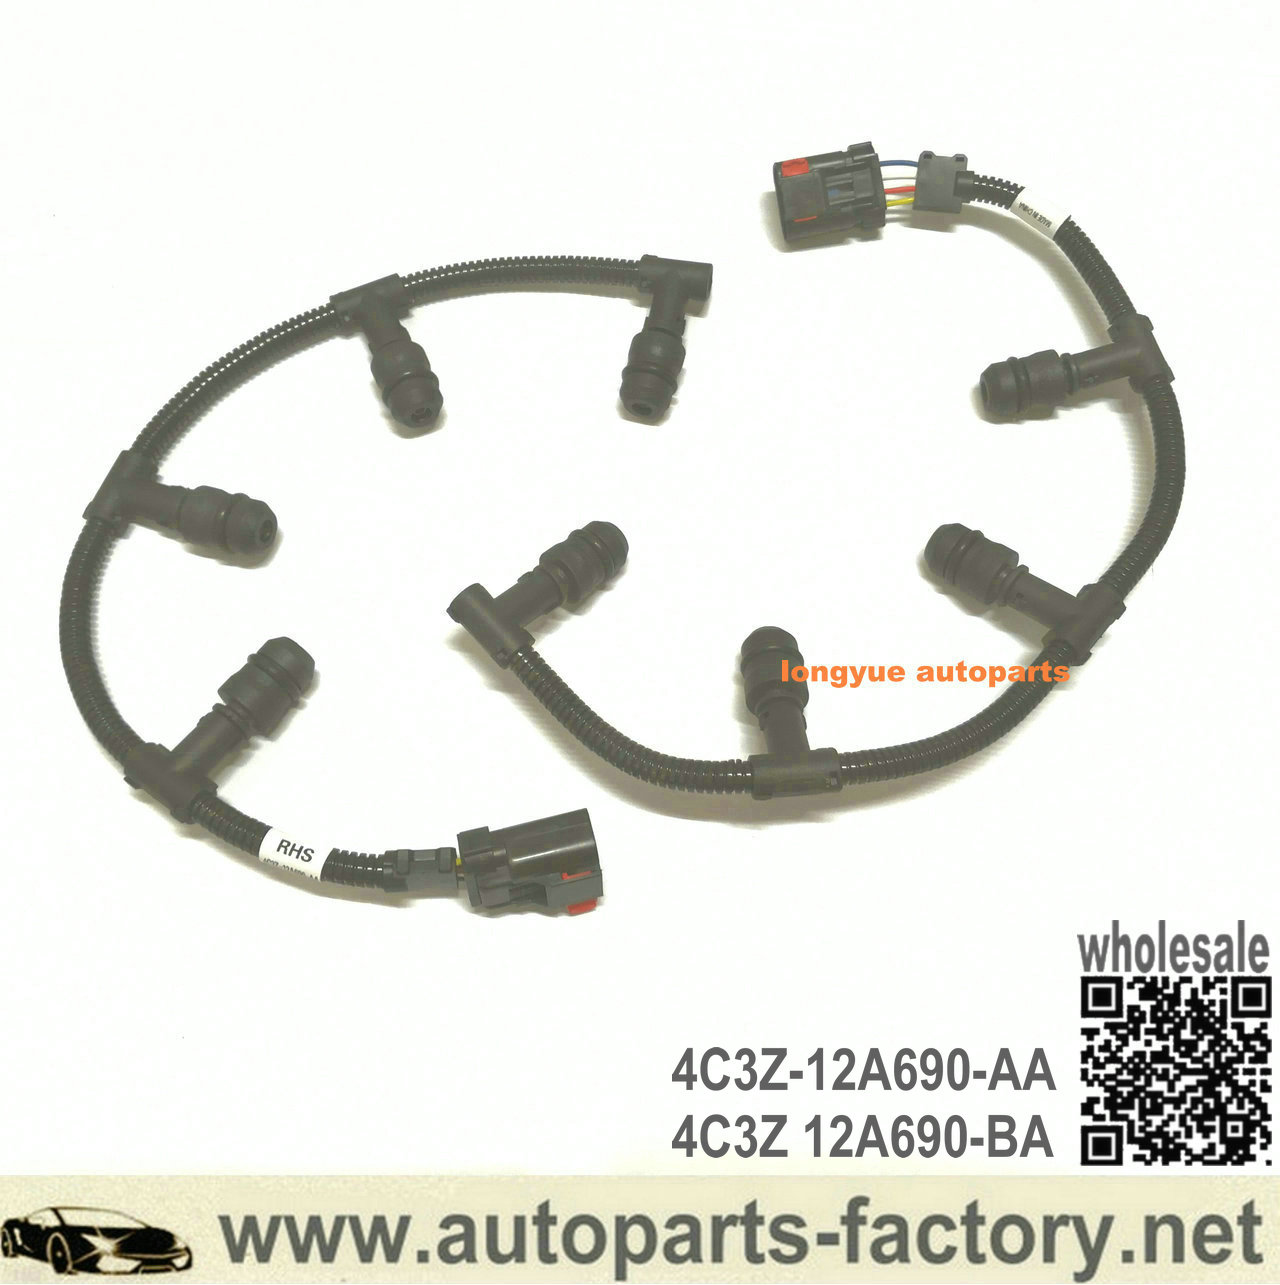 Ford Super Duty Excursion 6.0L Diesel EBP ICP Sensor Connector Kit 5C3Z-12224-A